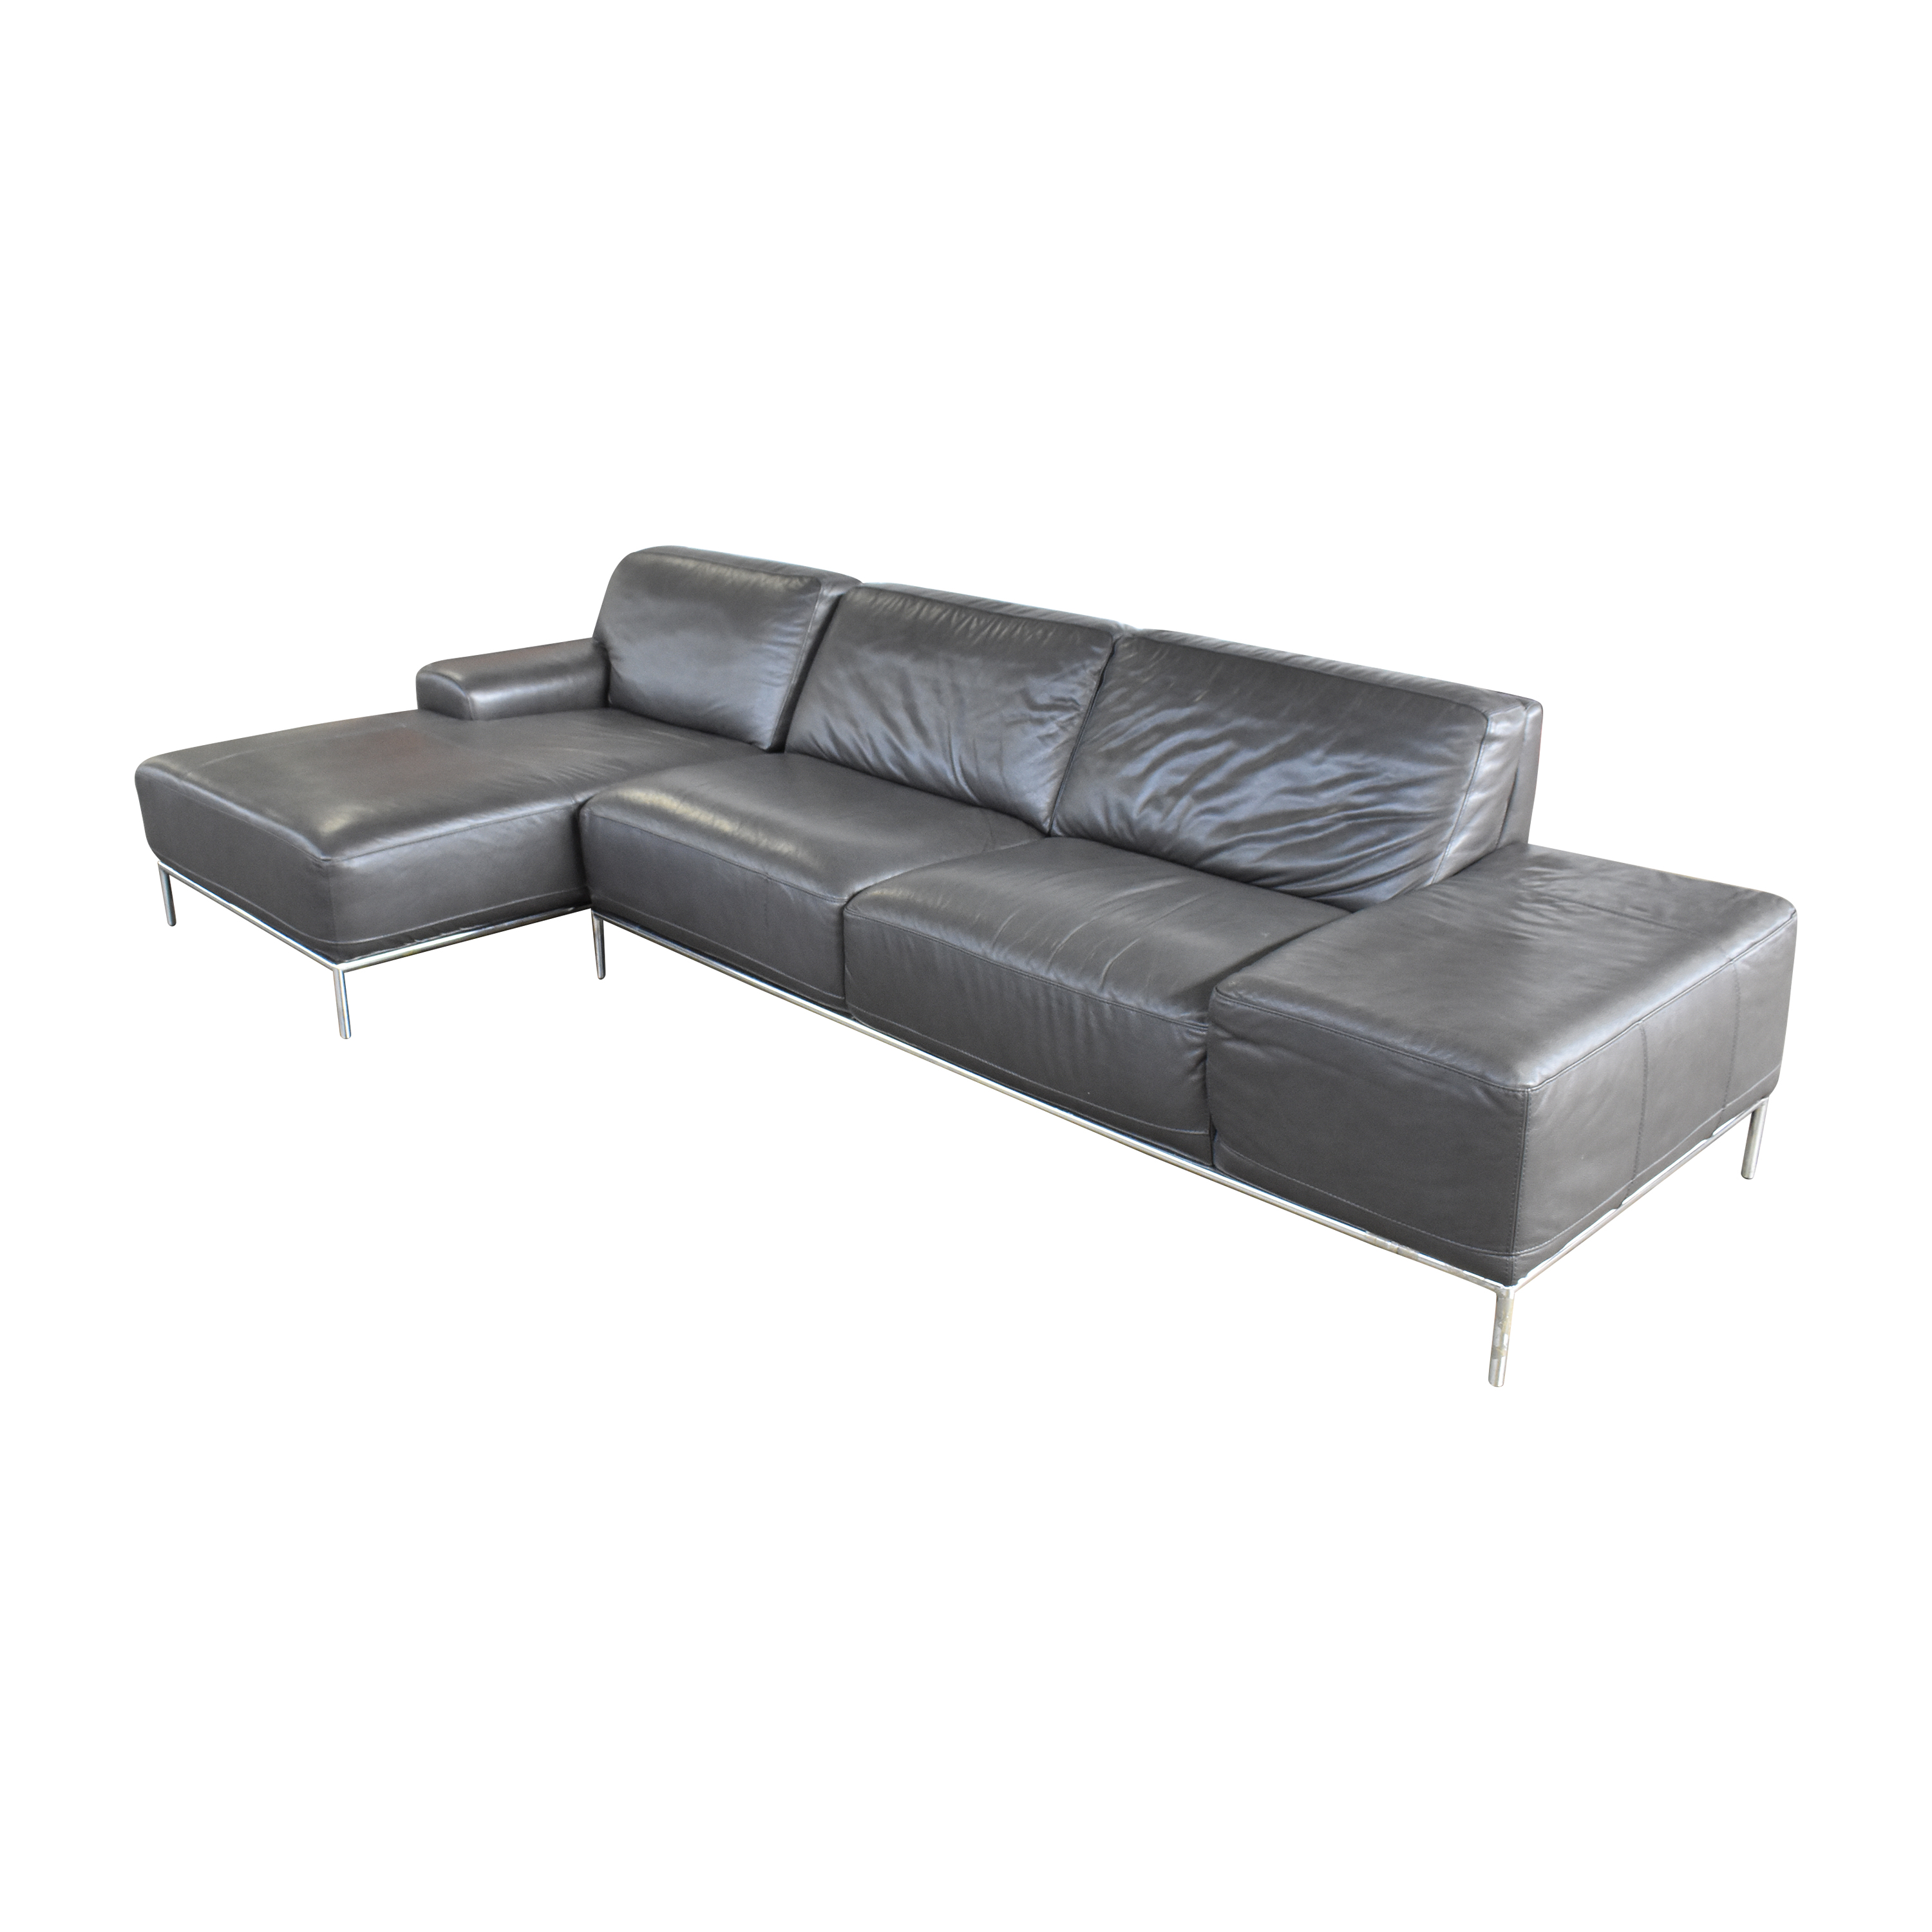 Chateau d'Ax Chateau d'Ax Grey Sectional dimensions